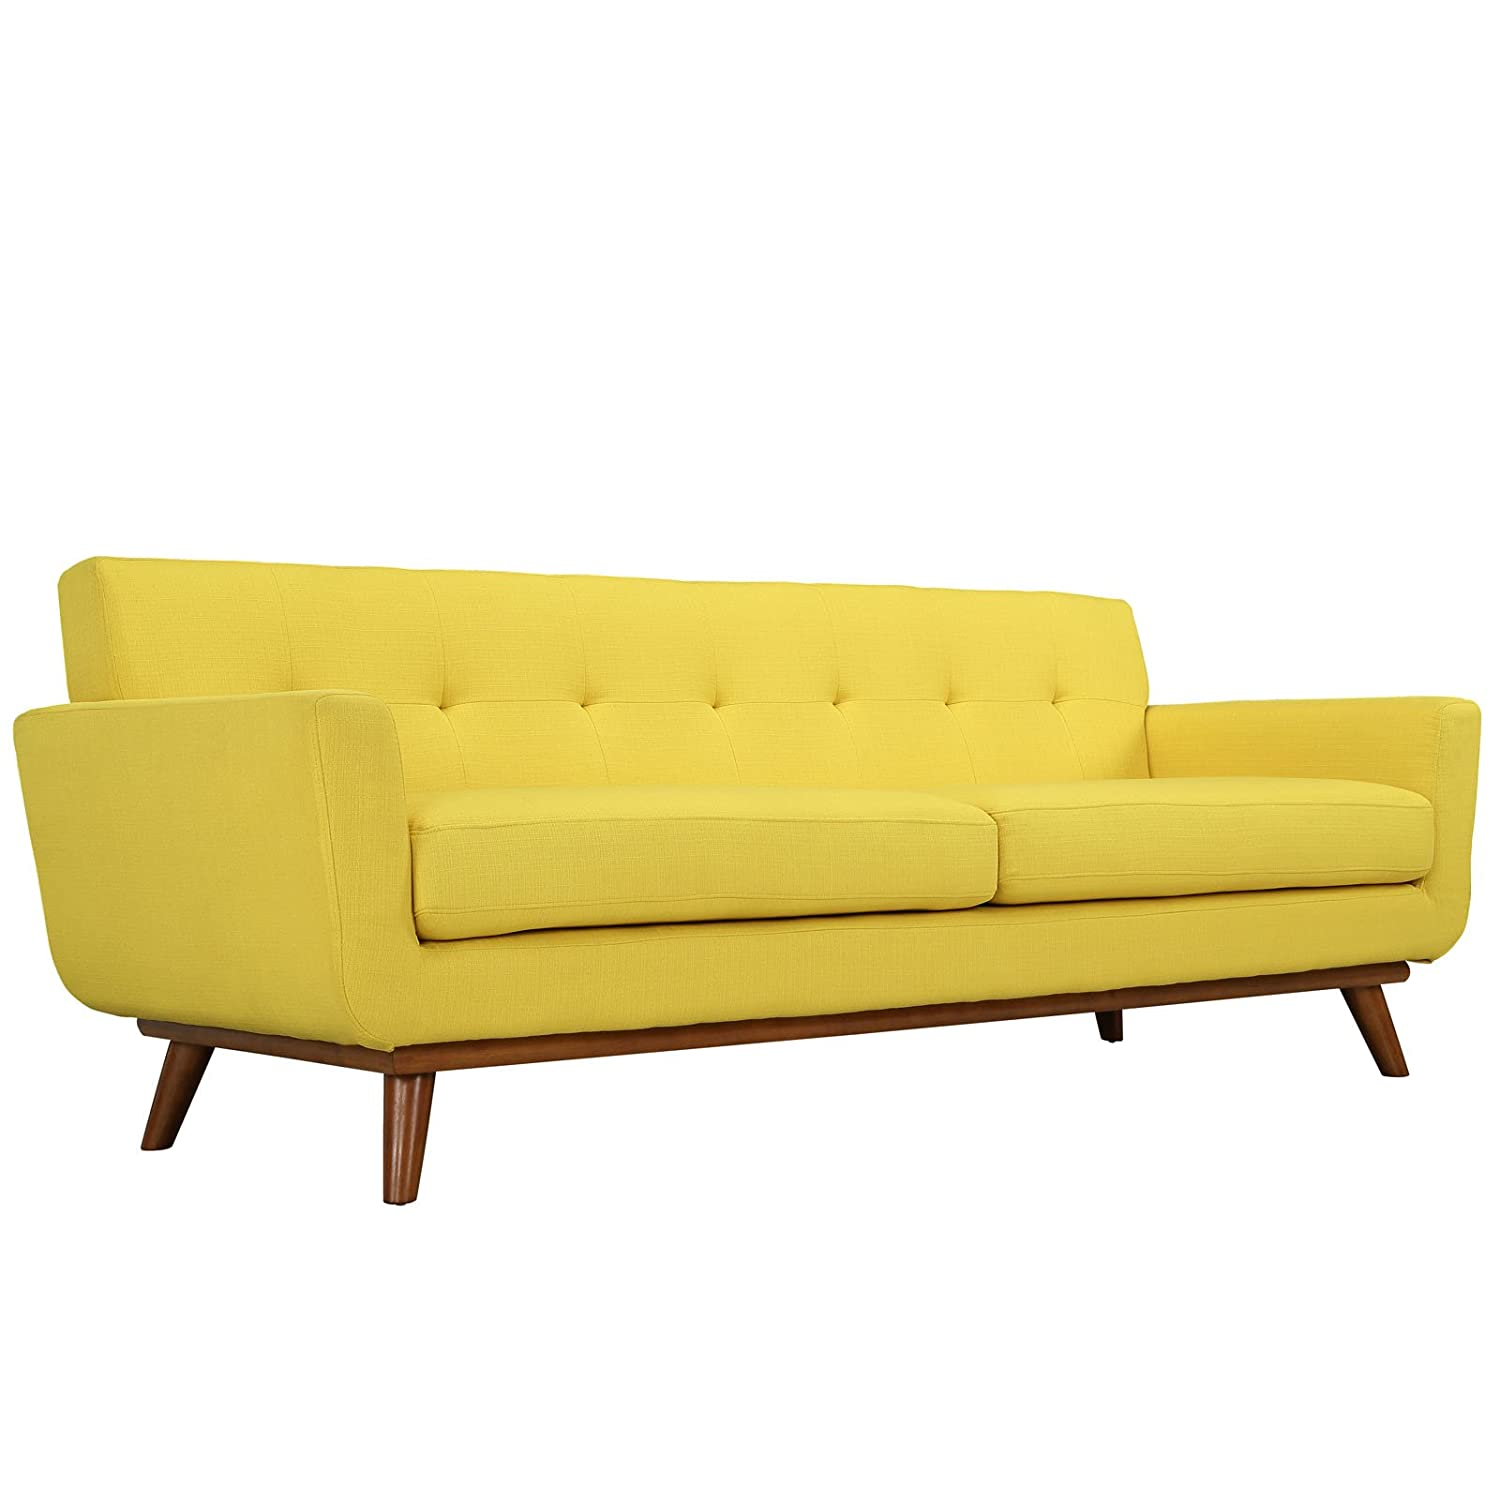 for loveseat l sofa leather period borge seating at loveseats sale mogensen retro furniture